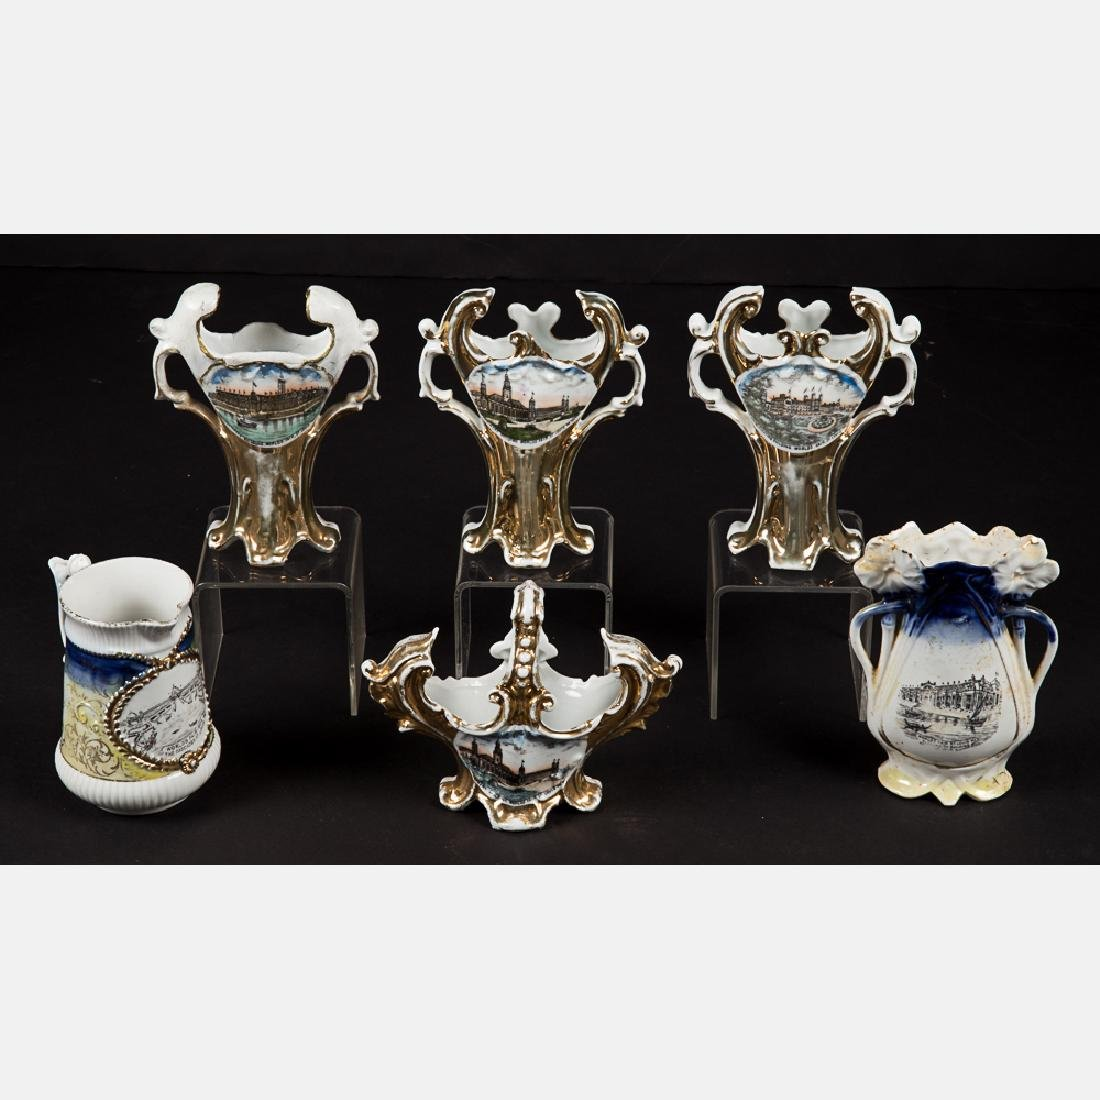 A Group of Six Porcelain Souvenirs from the Louisiana